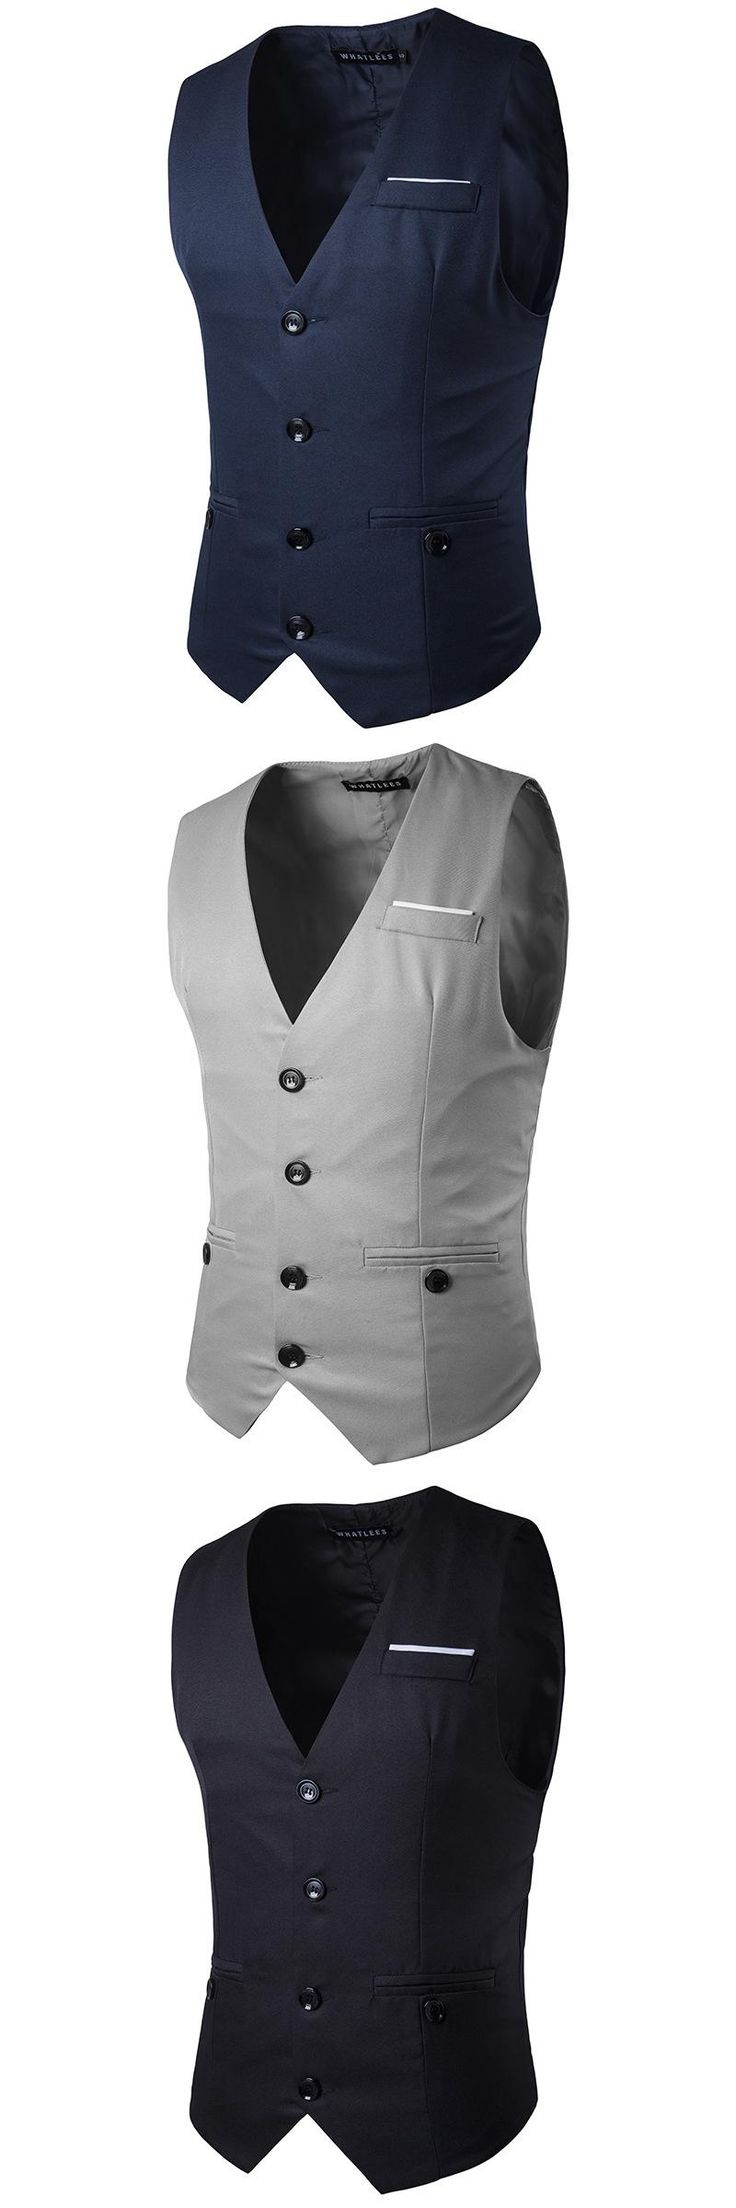 New fashion for men, chest decoration, buttons, gentleman suit, vest